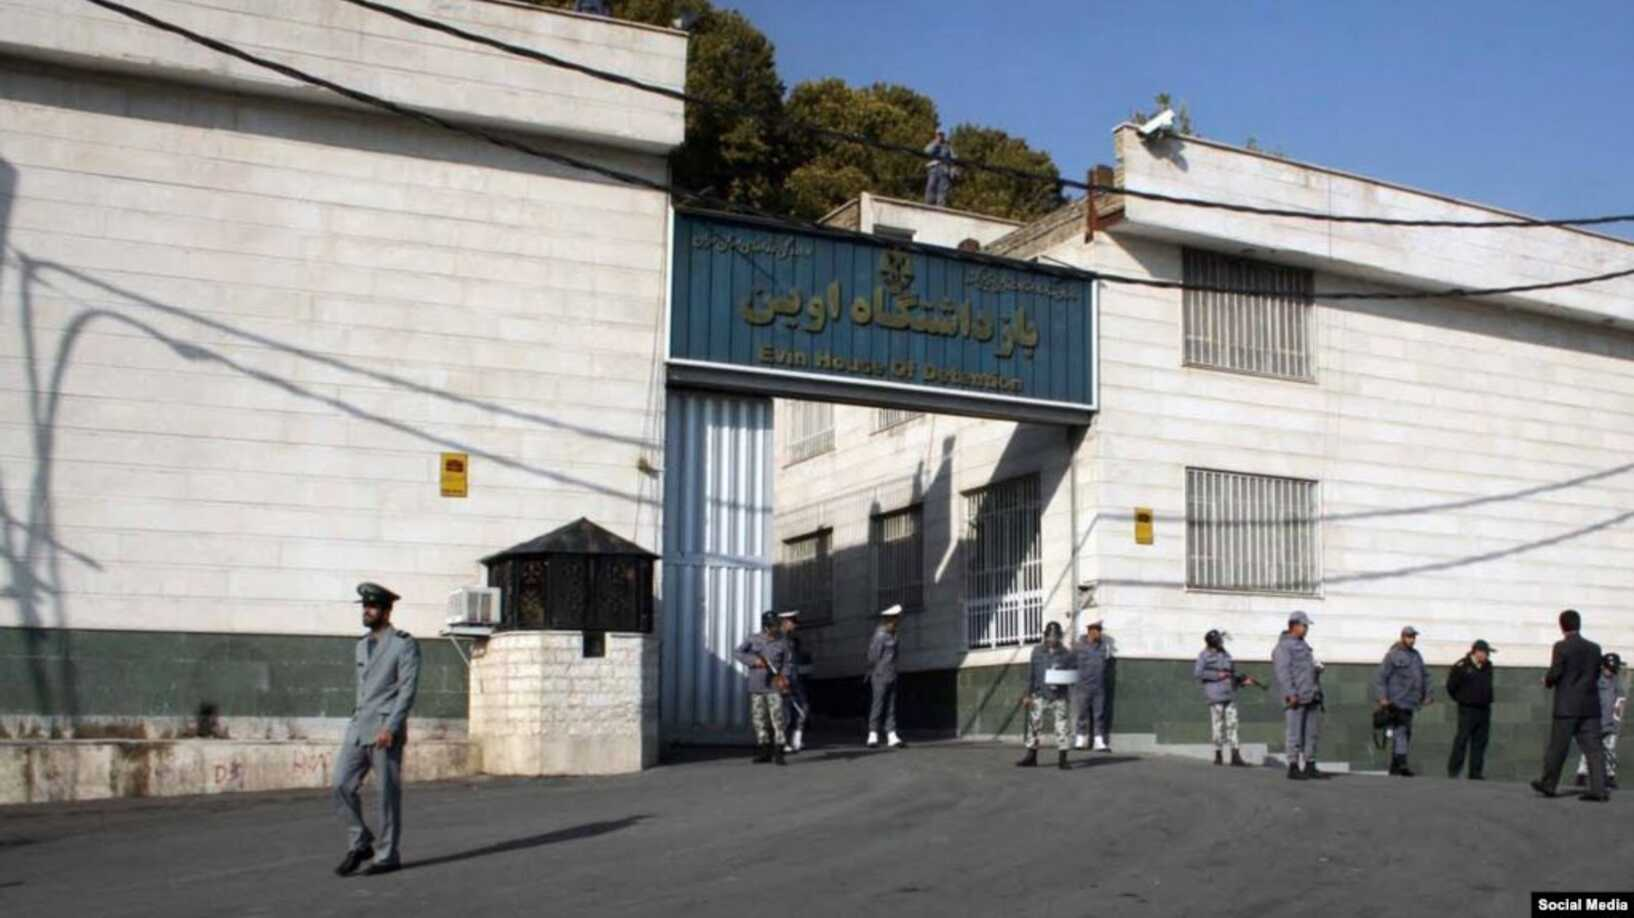 Print this page VOA News on Iran Baha'i Leader: Iran Keeping Up to 100 Baha'is in Prisons Under Virus Threat By Michael Lipin April 14, 2020 01:18 AM Undated image shared on social media of Tehran's Evin prison, where some Iranian Baha'is have been detained in recent years for activities linked to practicing their faith. Undated image shared on social media of Tehran's Evin prison, where some Iranian Baha'is have been detained in recent years for activities linked to practicing their faith.